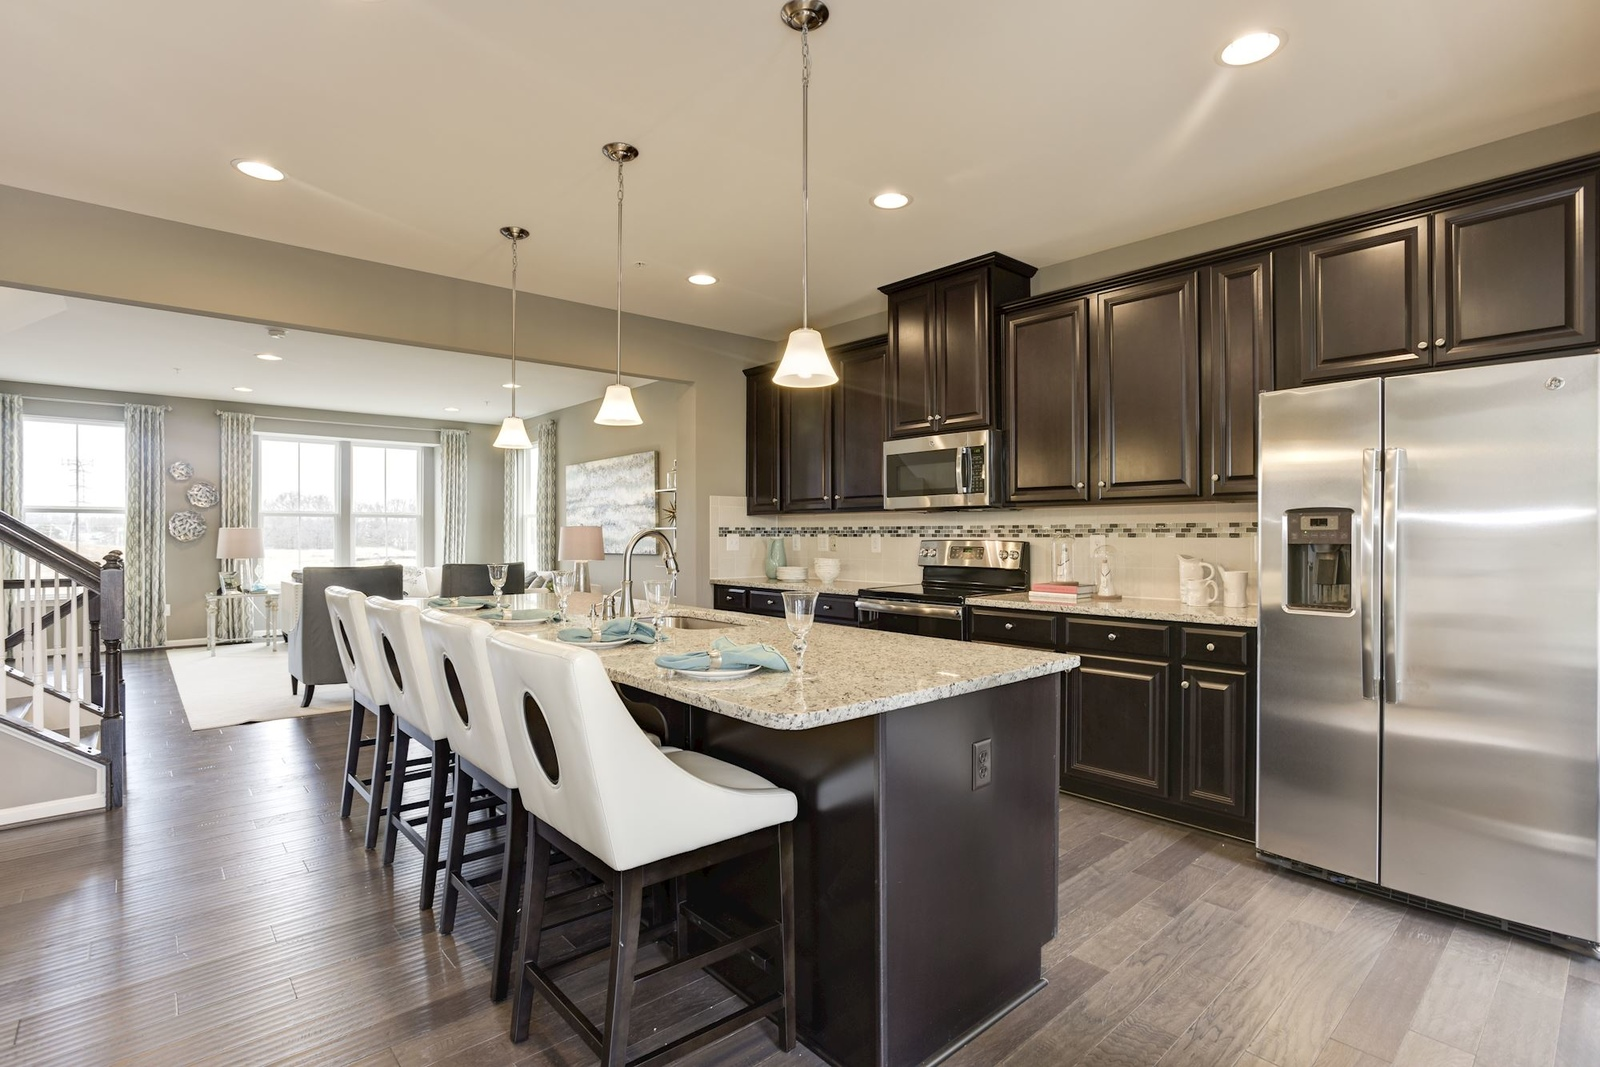 New Homes for sale at Ballard Green in Owings Mills MD within the – Ryan Homes Schubert Floor Plan